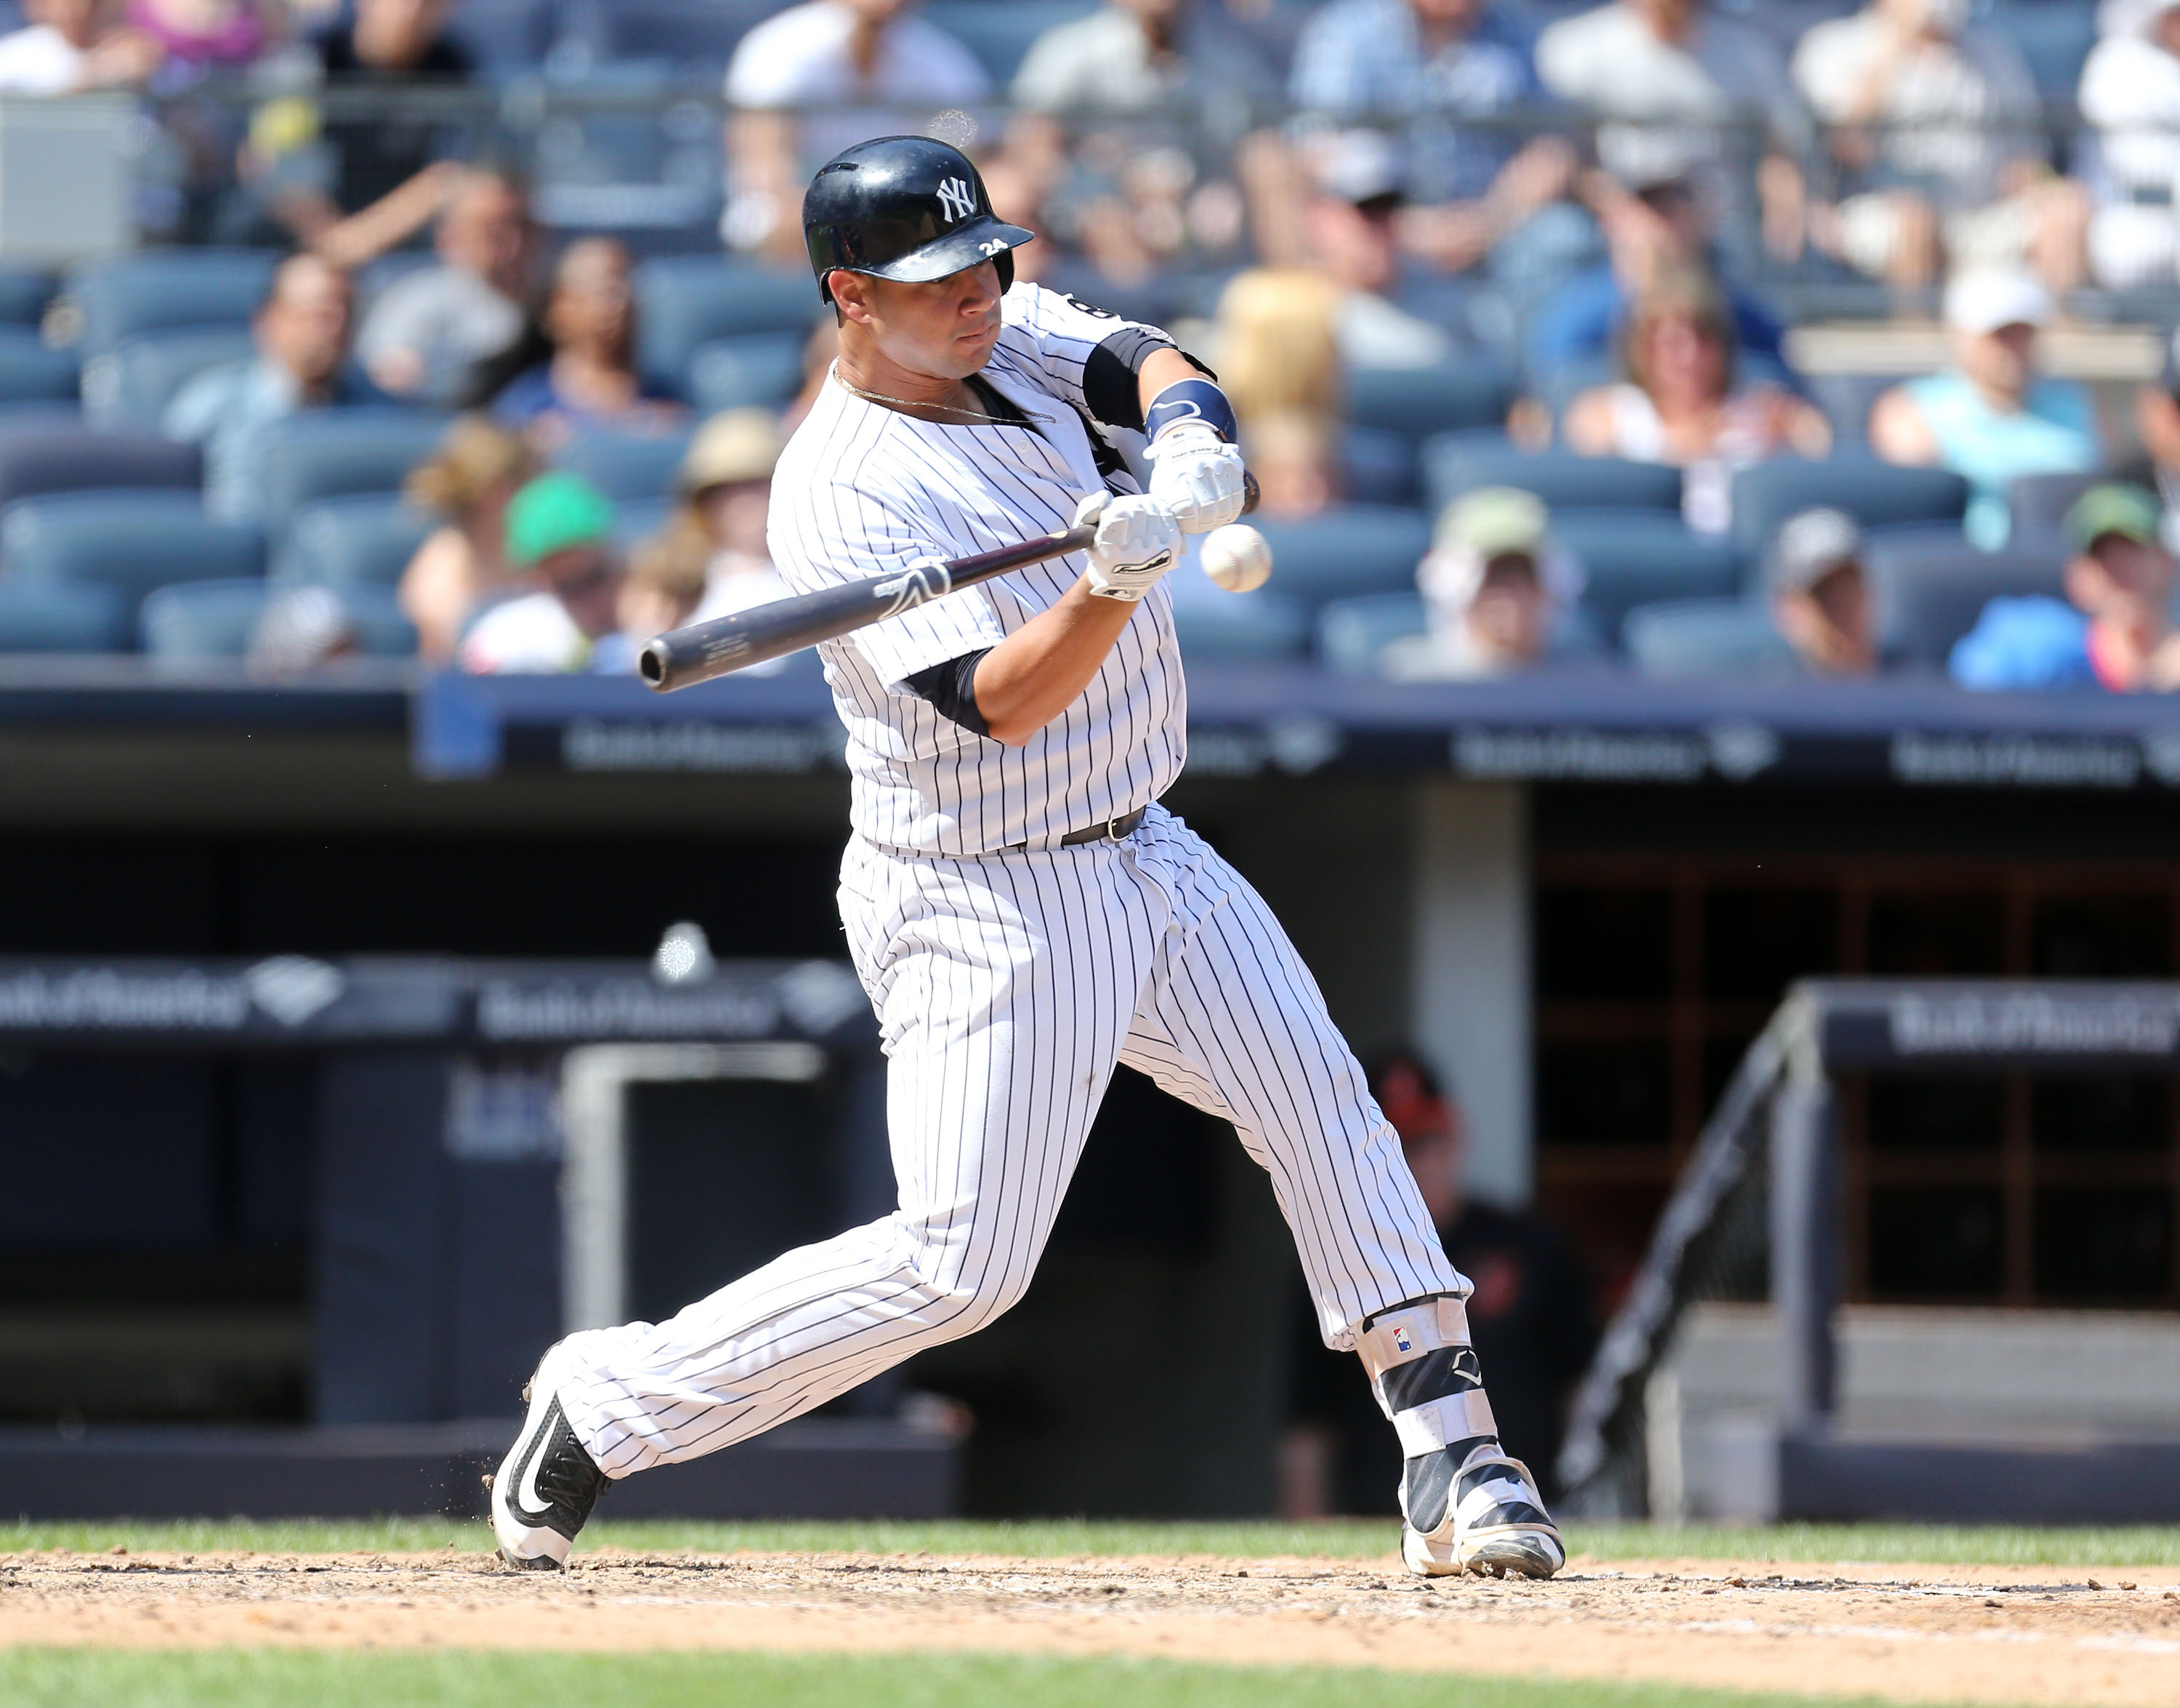 Gary Sanchez's Insane Month of August Is Among the Best This Decade